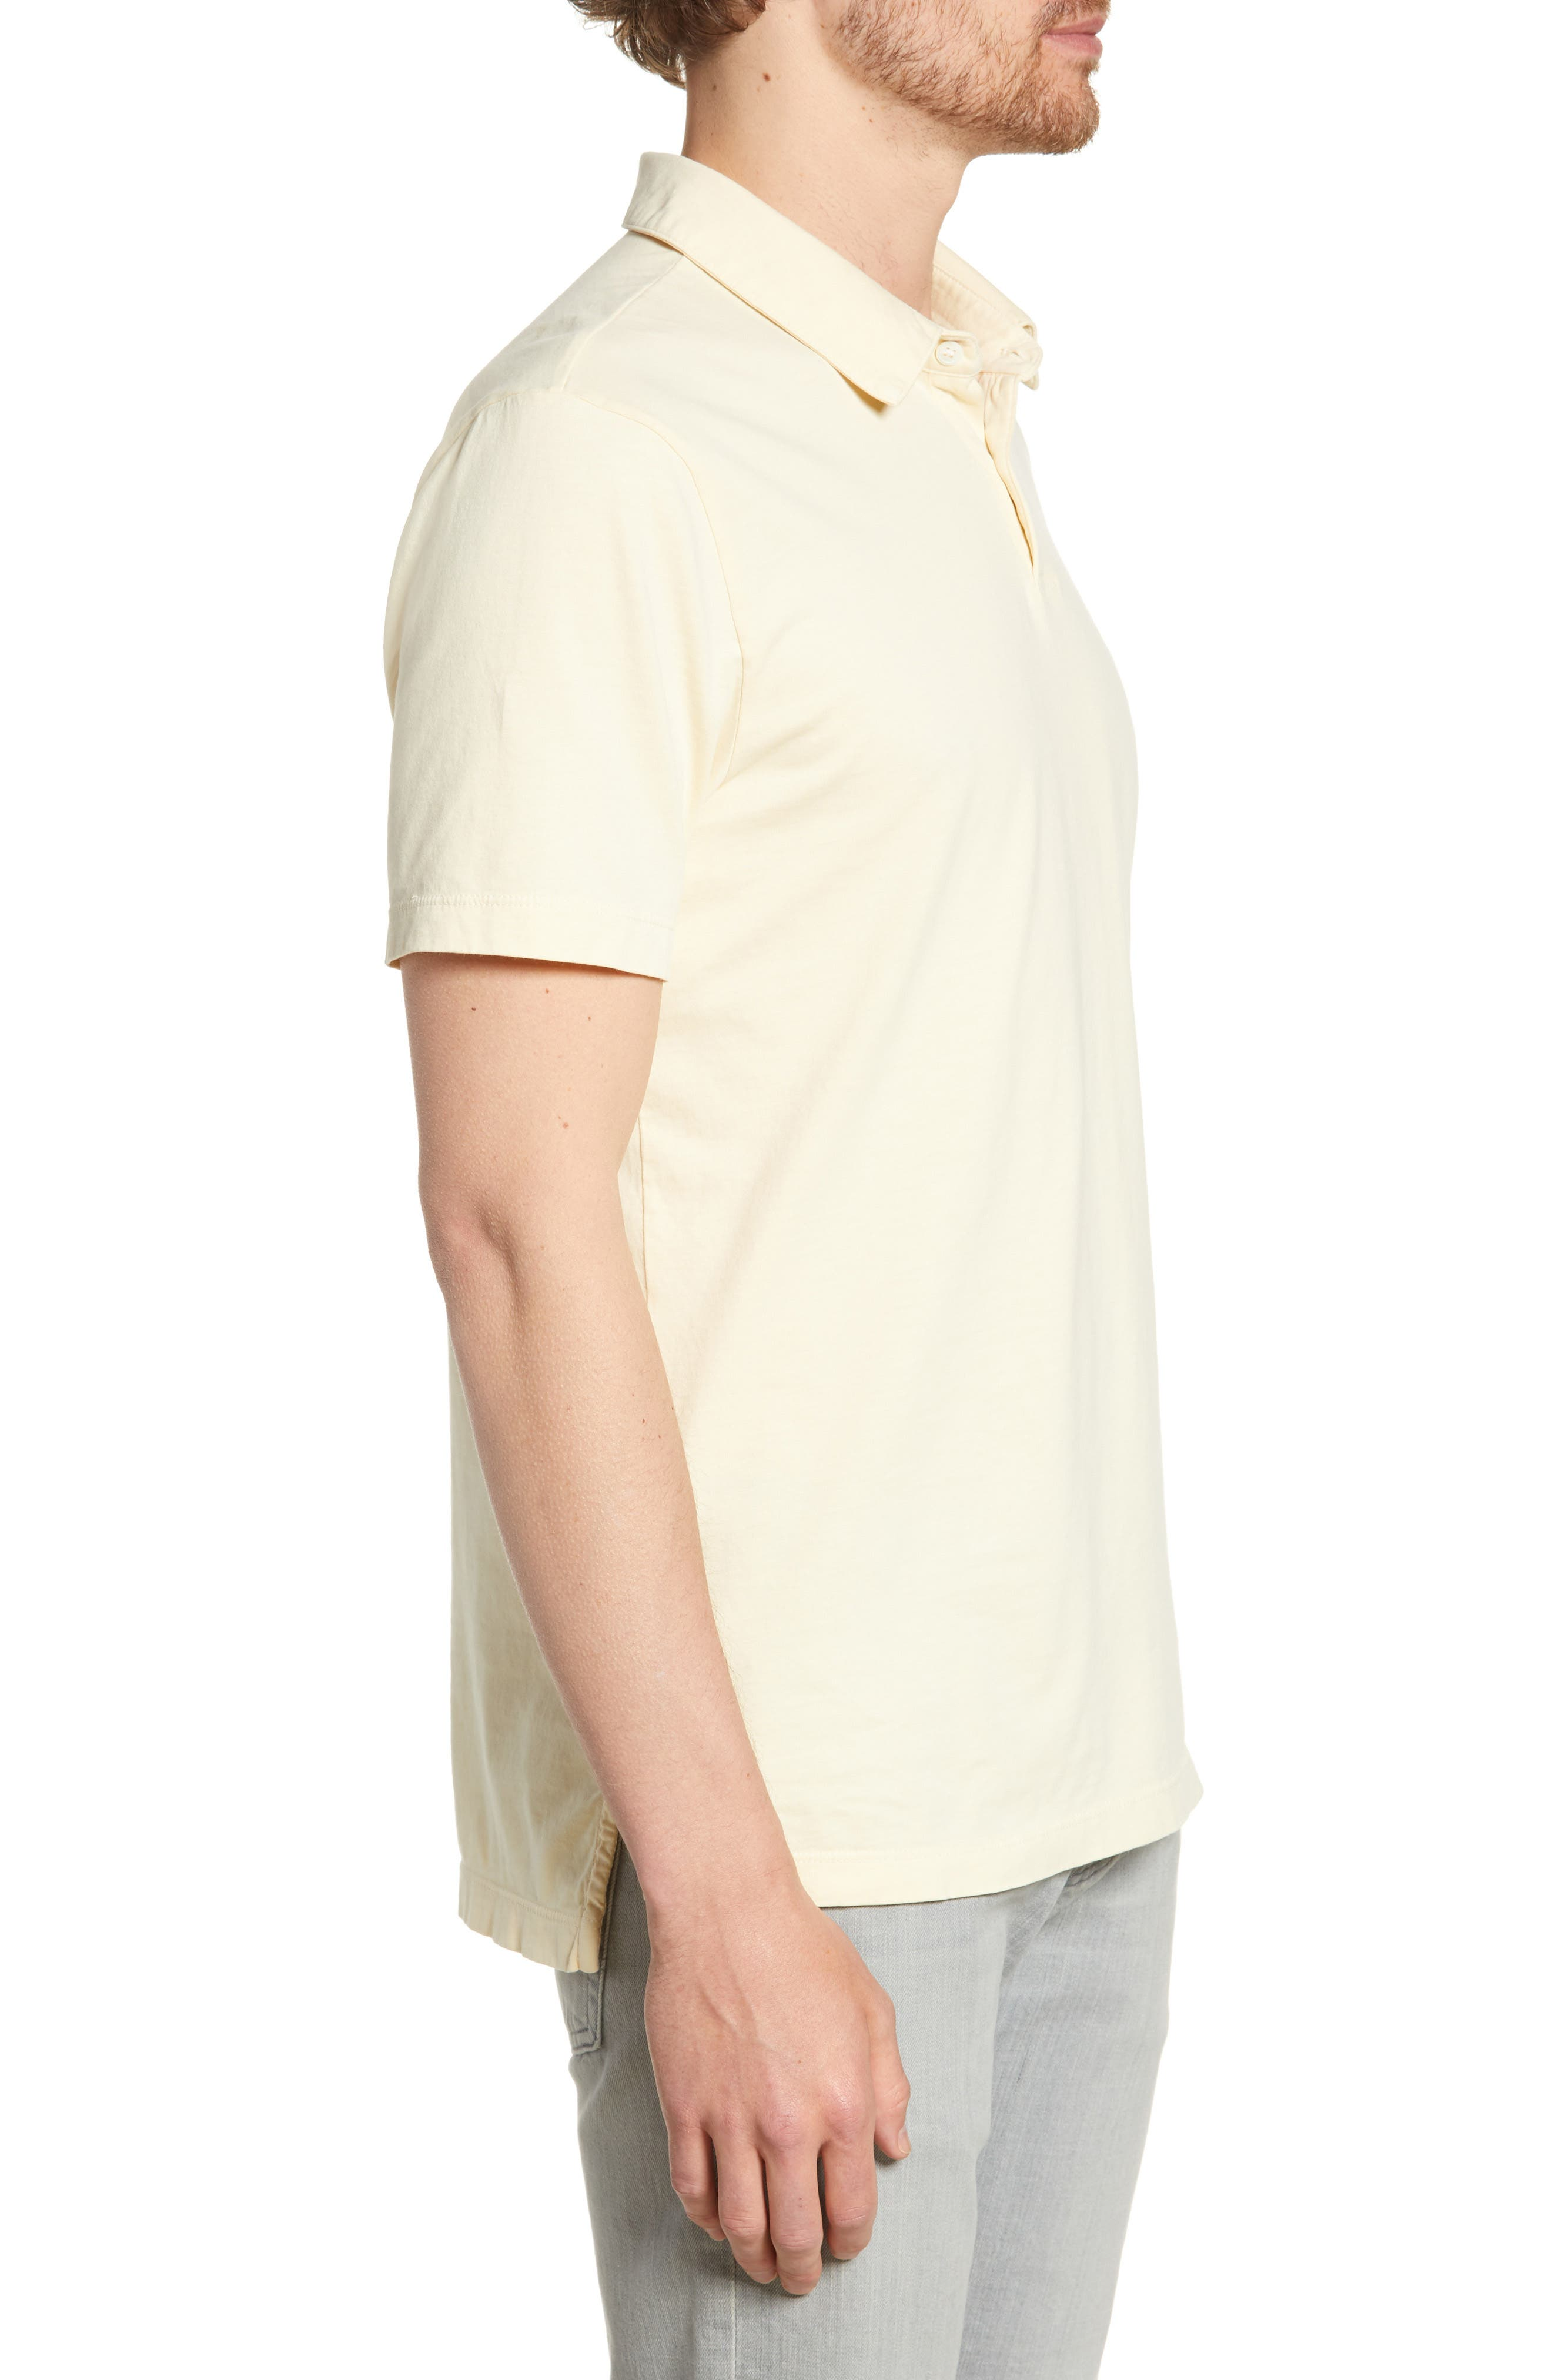 JAMES PERSE, Slim Fit Sueded Jersey Polo, Alternate thumbnail 3, color, GESSO